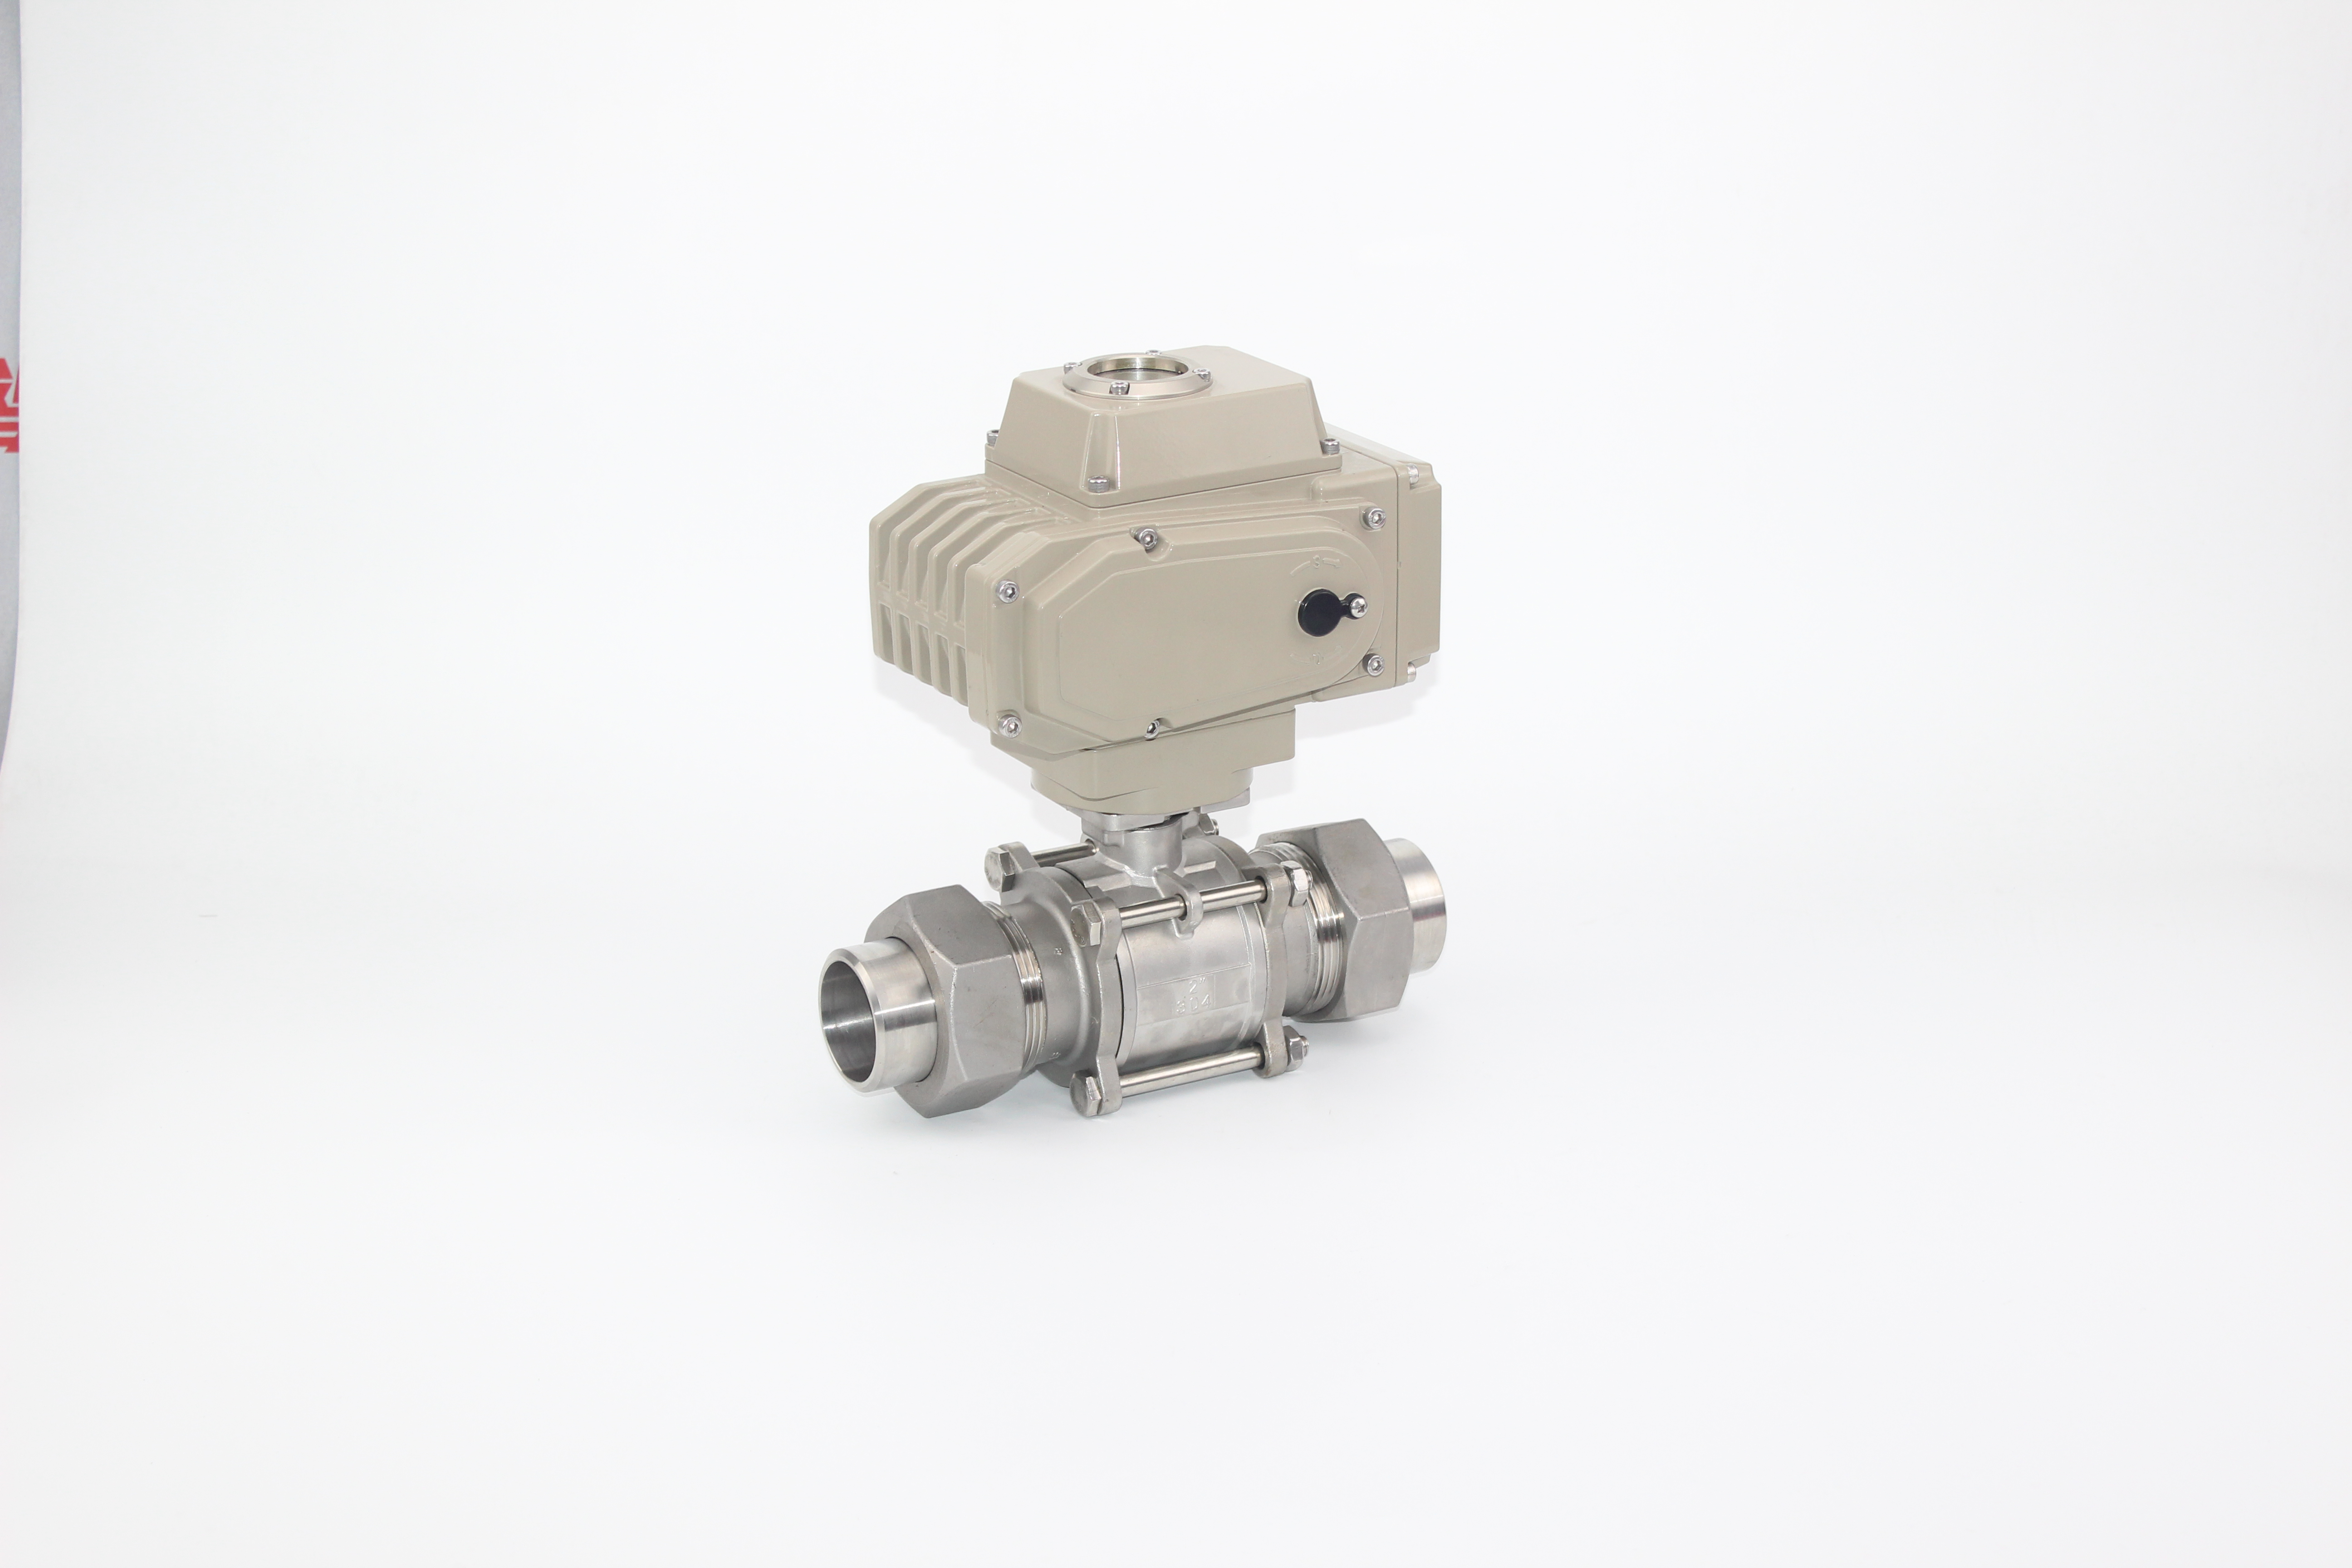 3PC Stainless Steel Thread Ball Valve With Union With Actuator